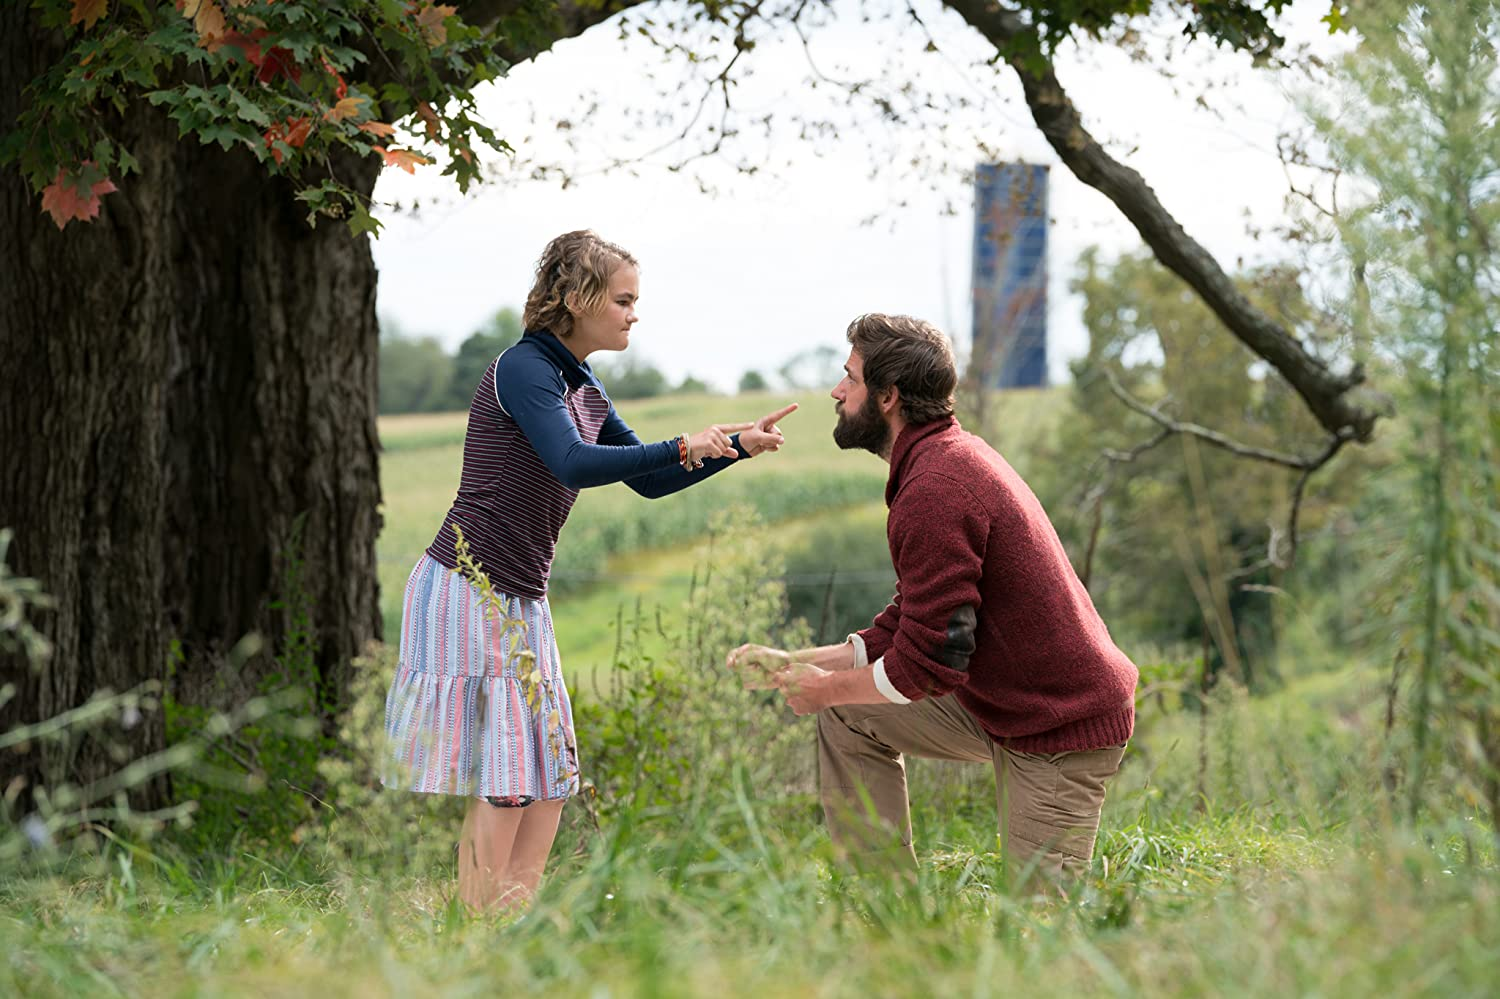 John Krasinski and Millicent Simmonds in A Quiet Place (2018)